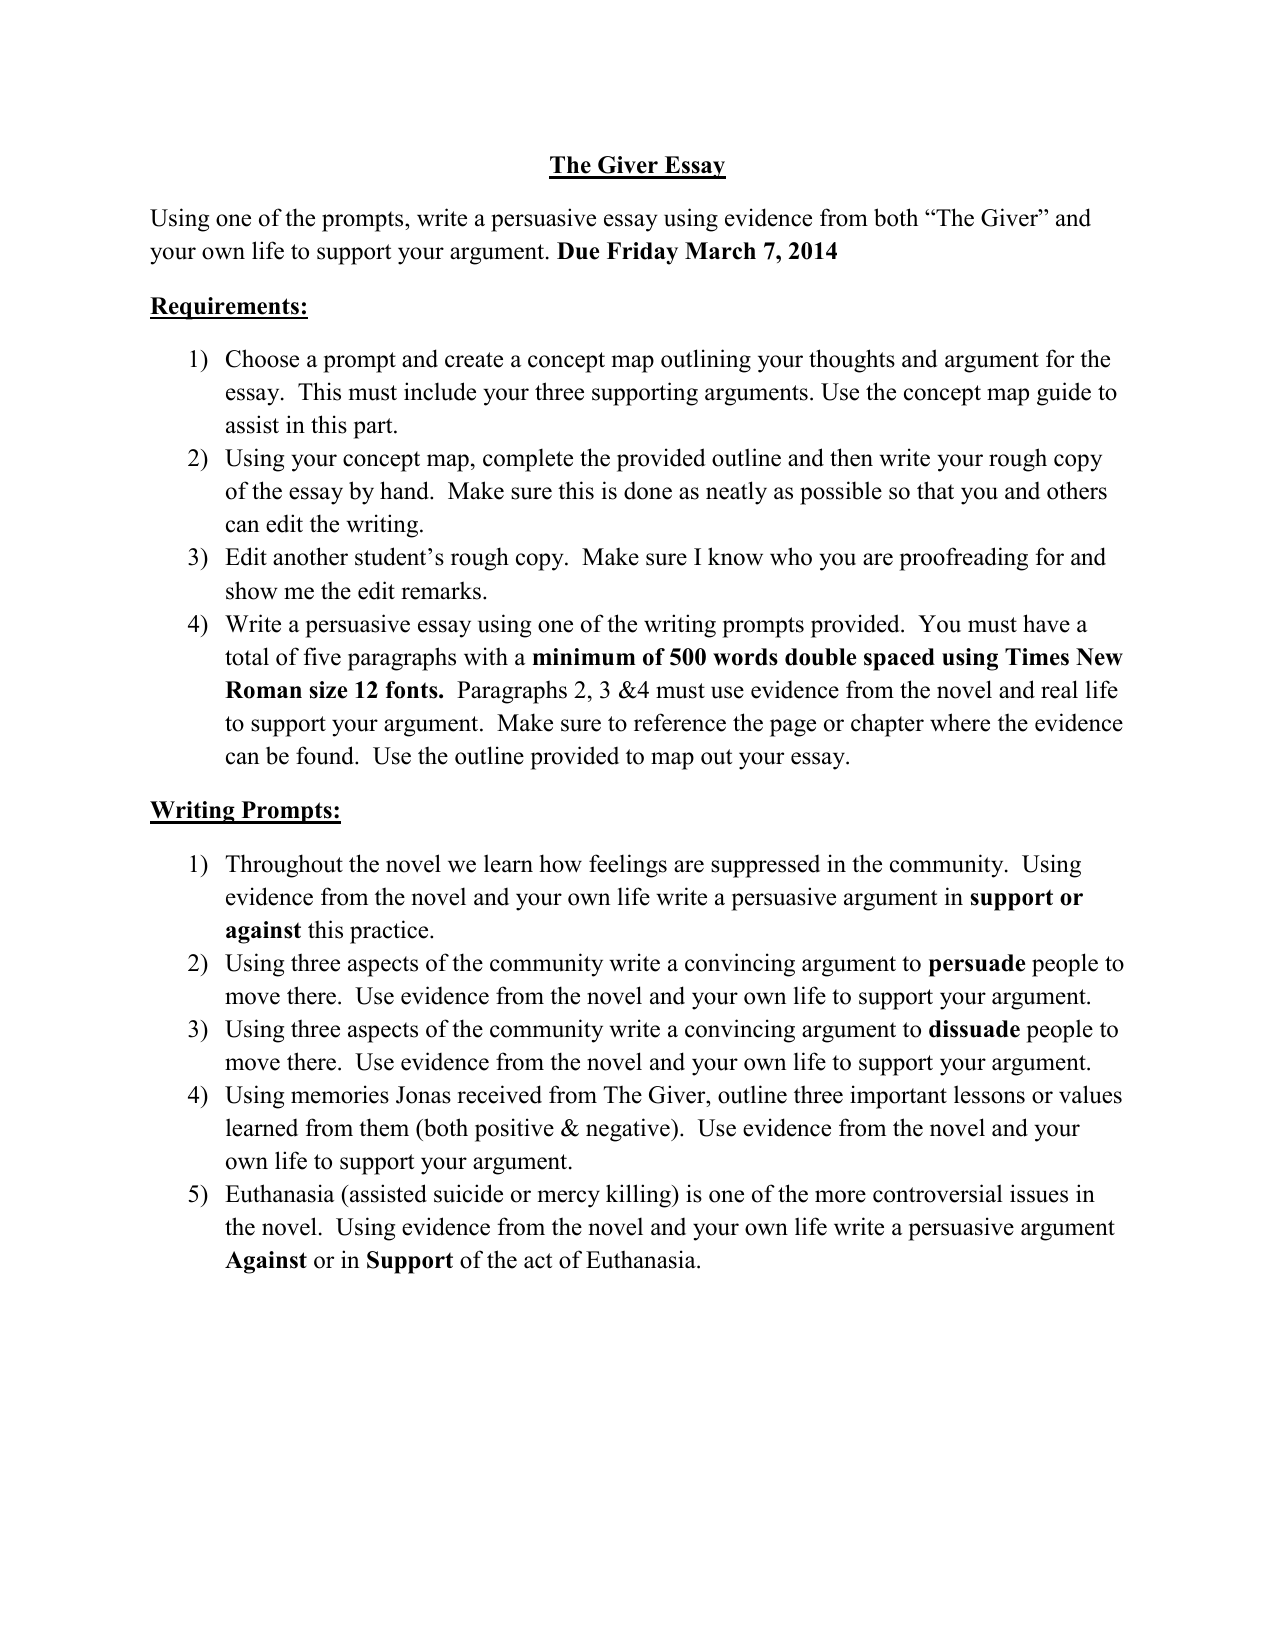 Example Of A Thesis Statement In An Essay  What Is A Thesis In An Essay also How To Write An Application Essay For High School Grade  The Giver Essay Business Essay Sample